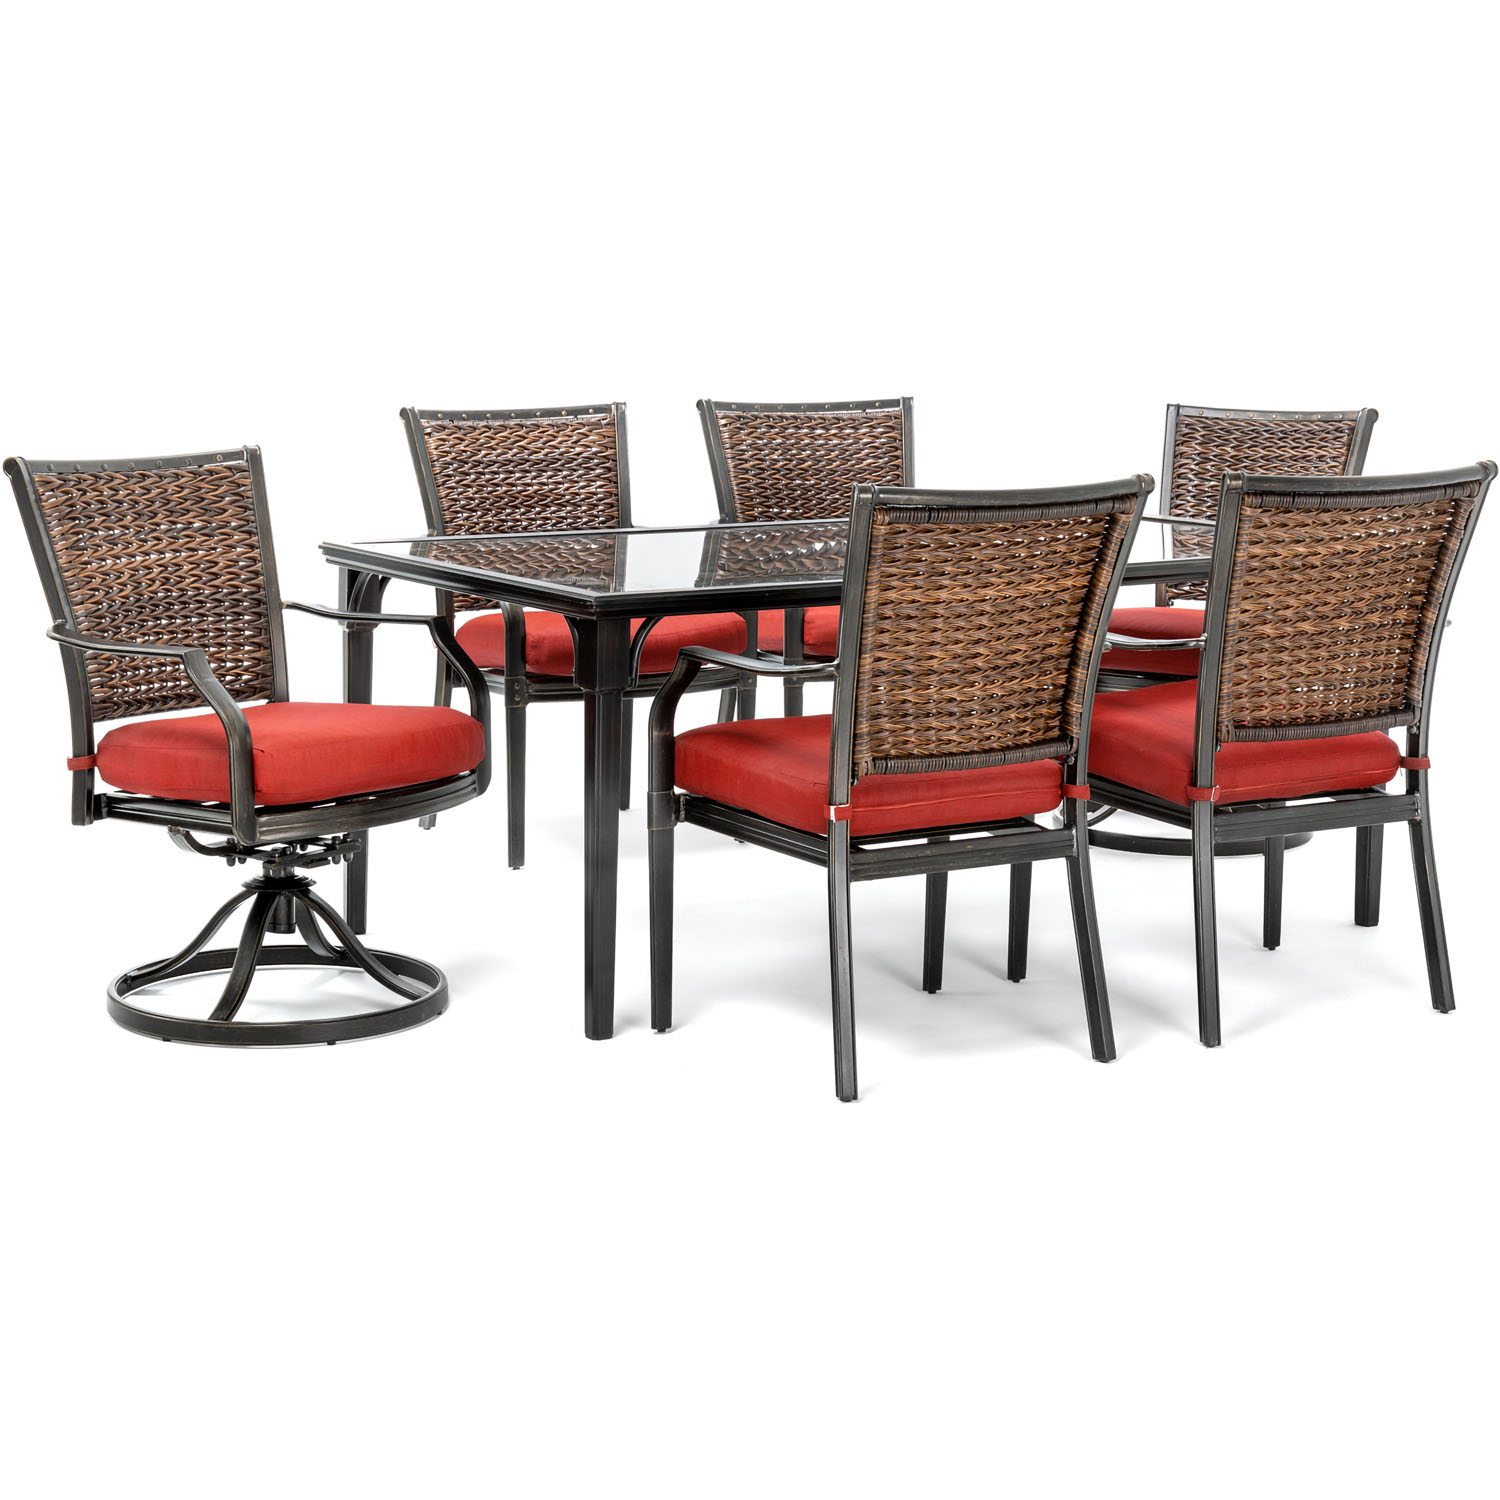 """Hanover Mercer 7-Piece Patio Dining Set in Crimson Red with 4 Dining Chairs, 2 Swivel Rockers, and a 40"""" x 70"""" Glass-top Table"""